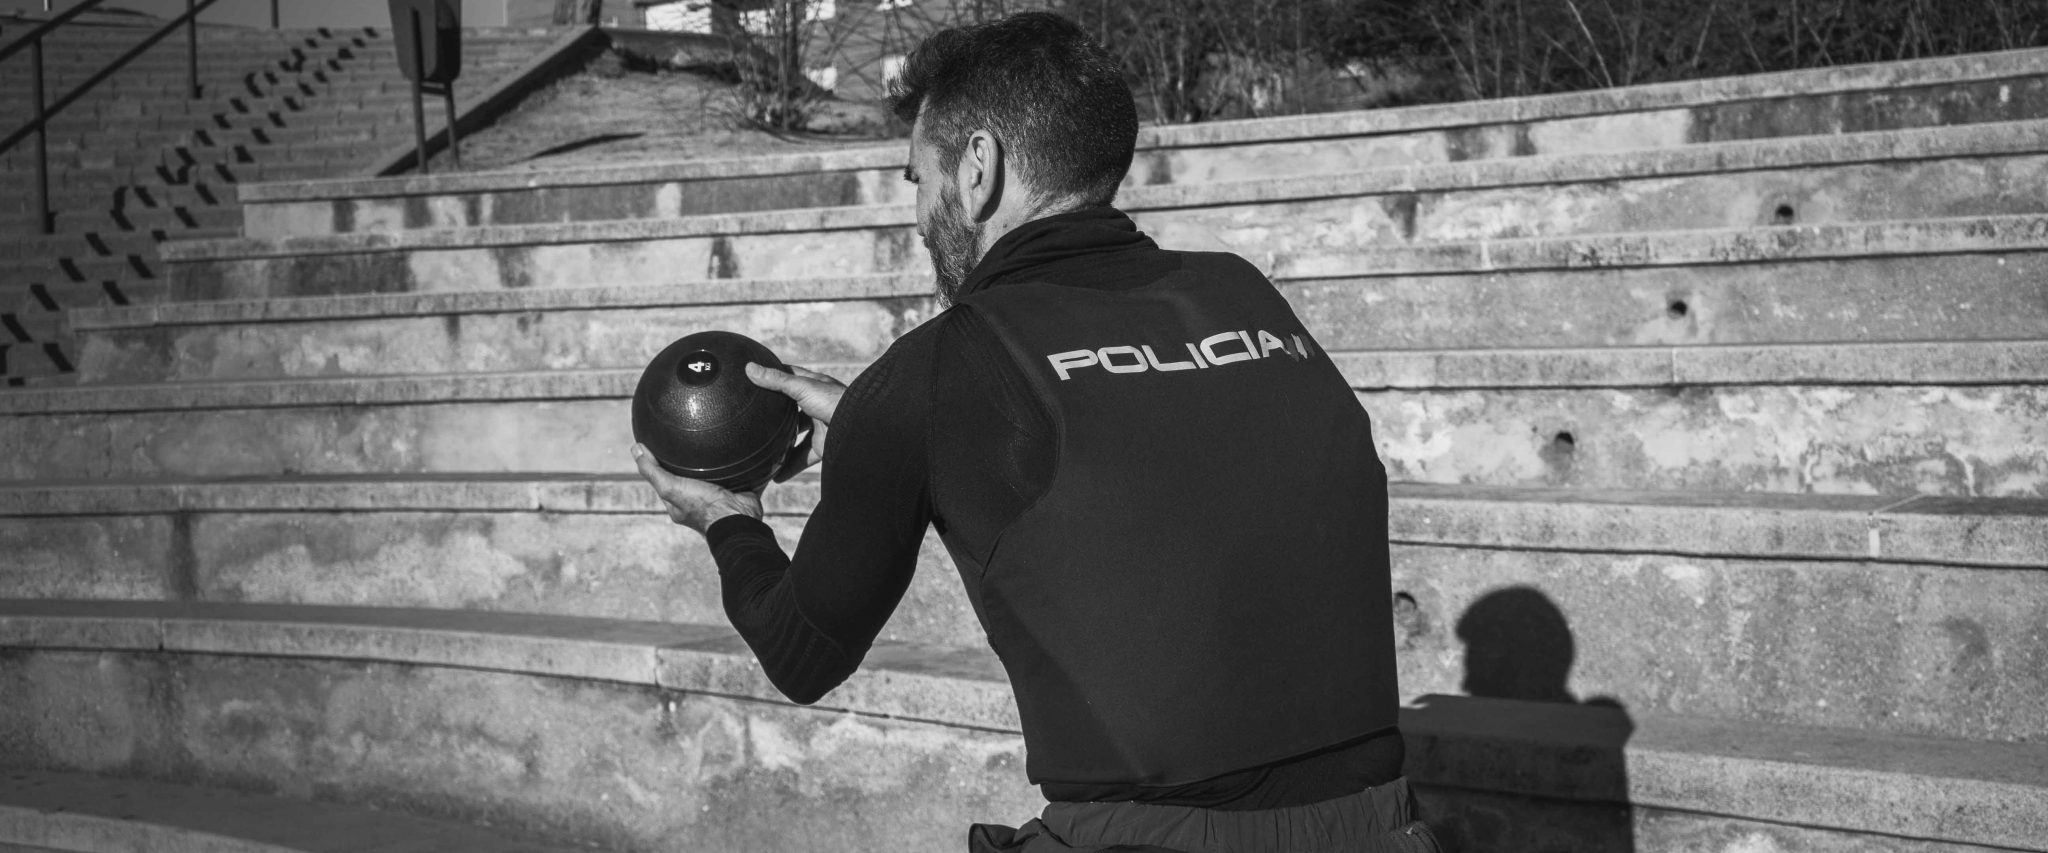 opositores policia sweat4success